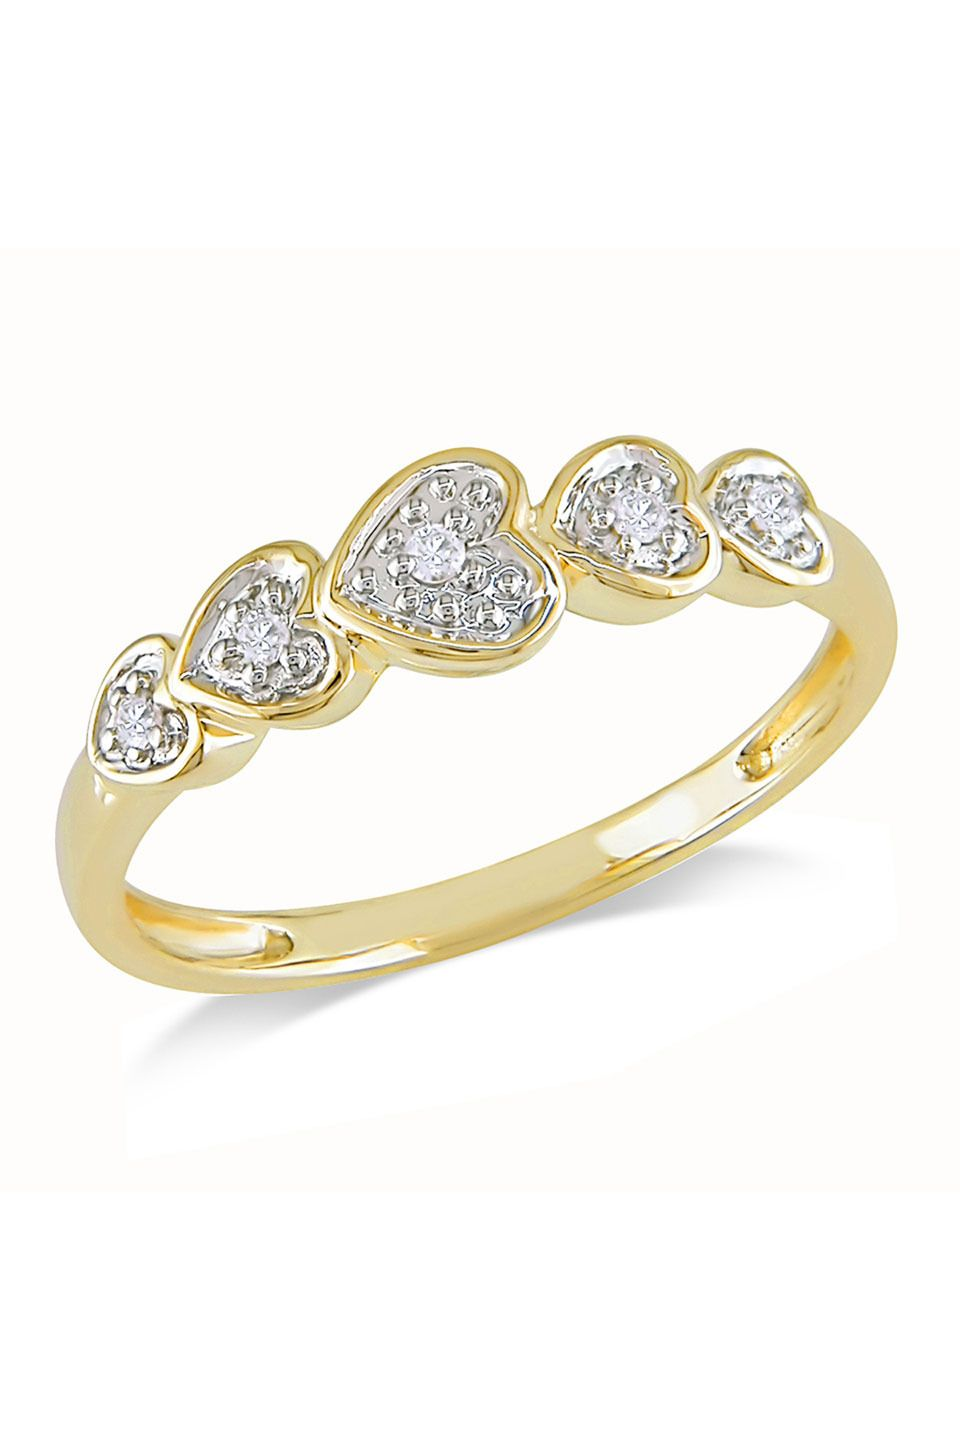 0.05 CT Diamond Fashion Ring In 10k Yellow Gold Like Capri ...